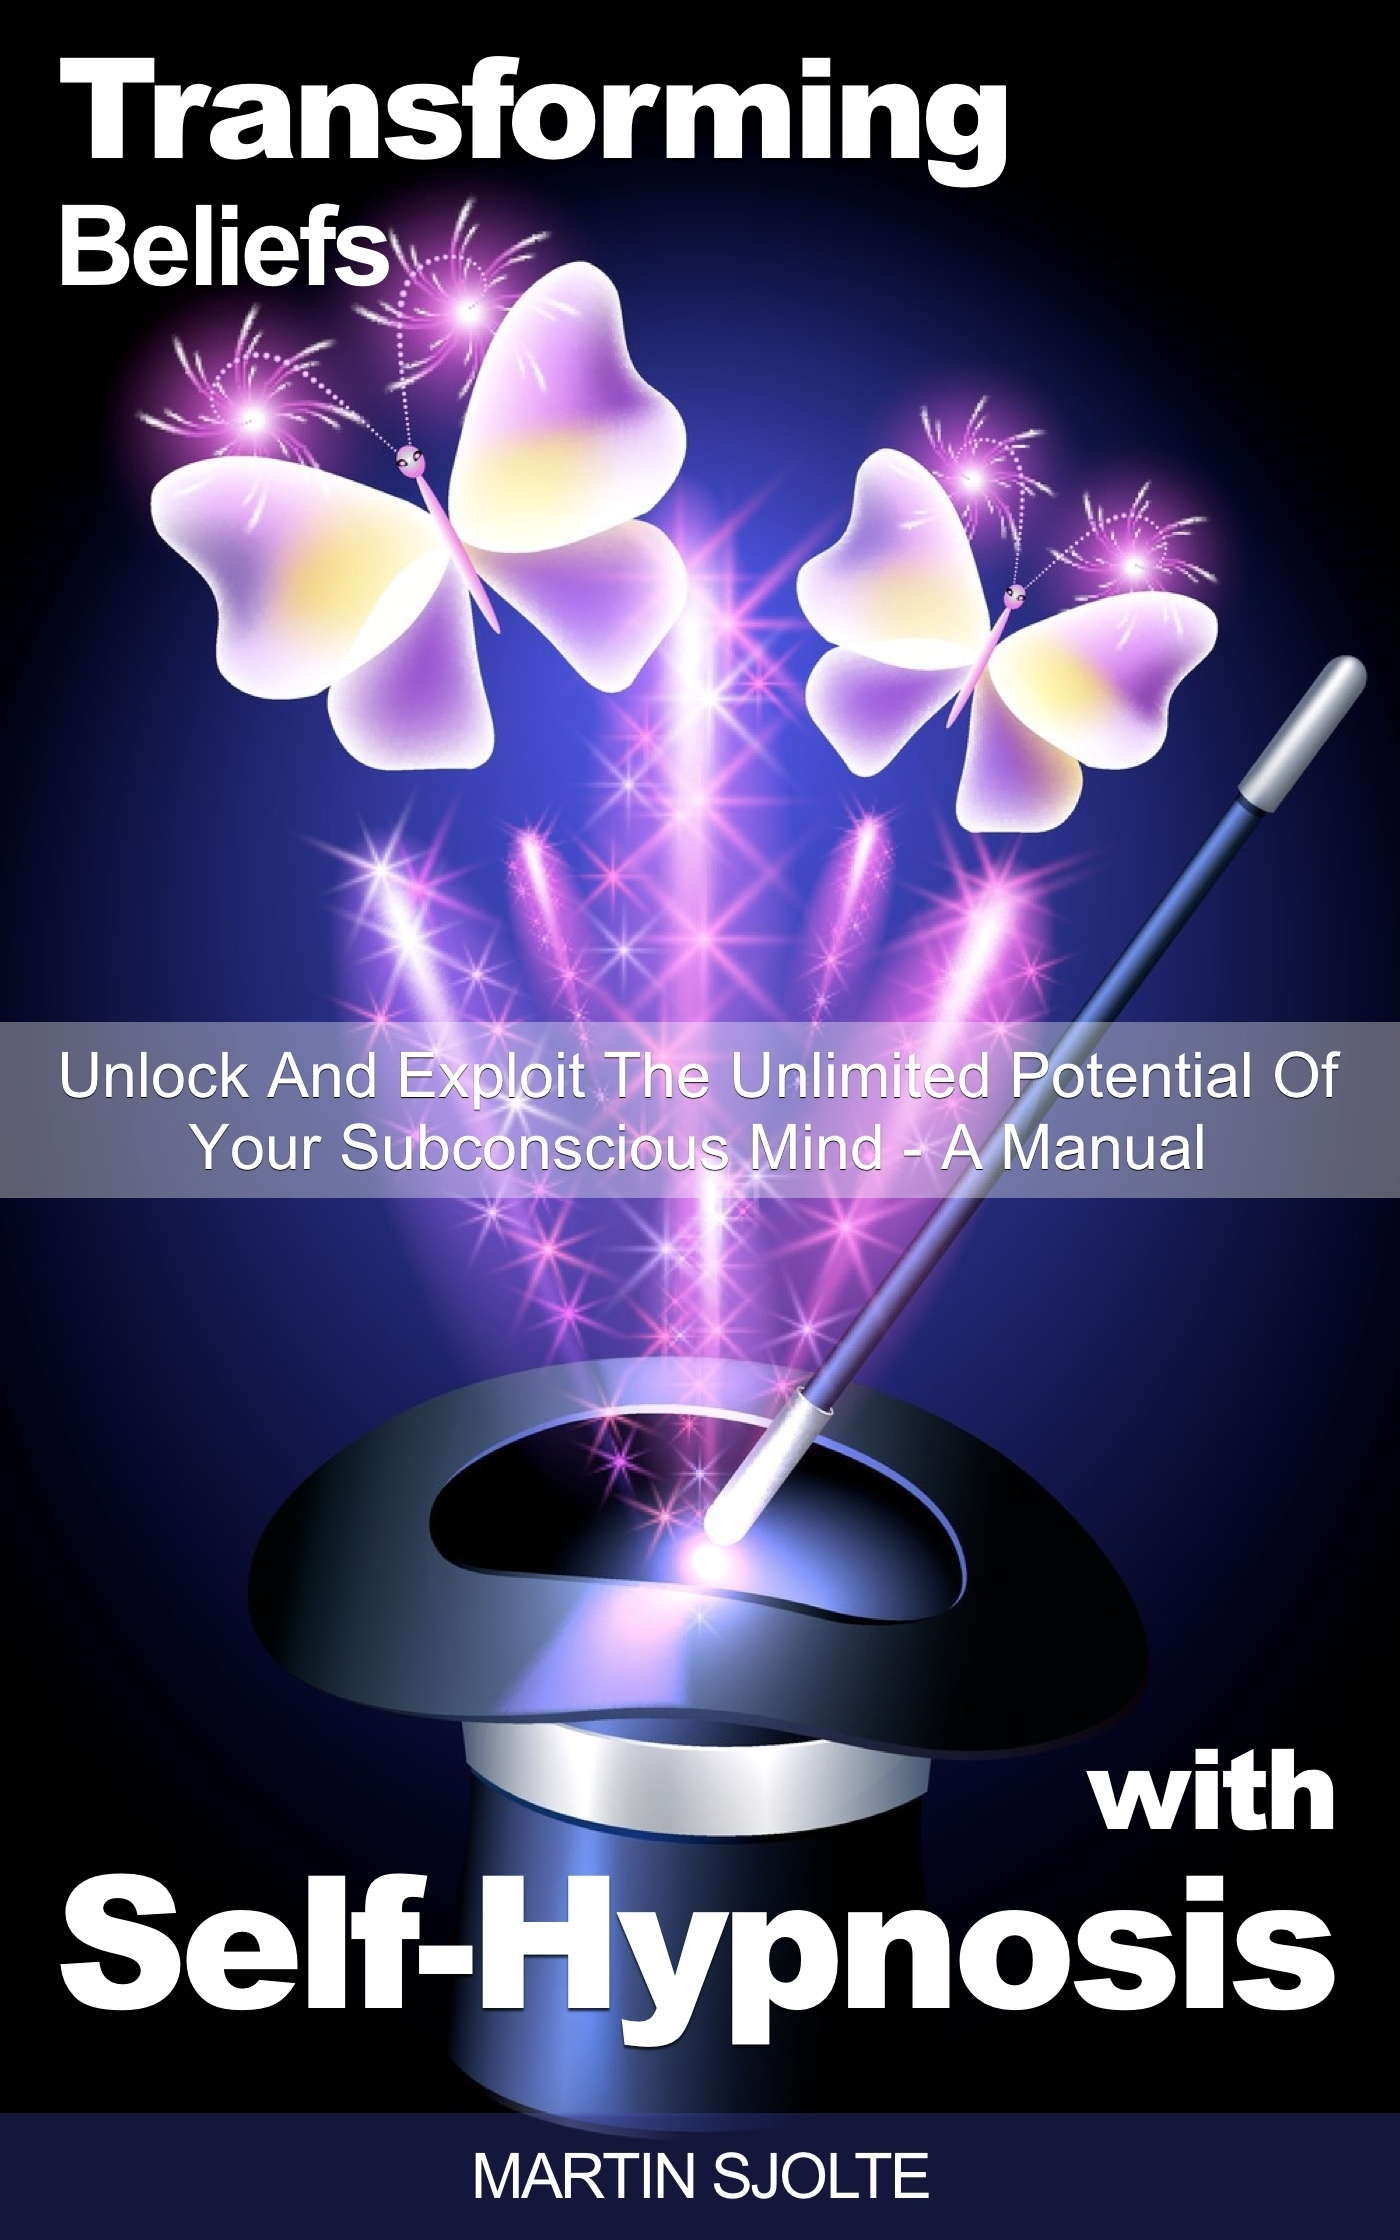 Book cover Transforming-Beliefs-with-Self-Hypnosis-Unlock-and-Exploit-The-Unlimited-Potential-of-Your-Subconscious-Mind-a-Manual